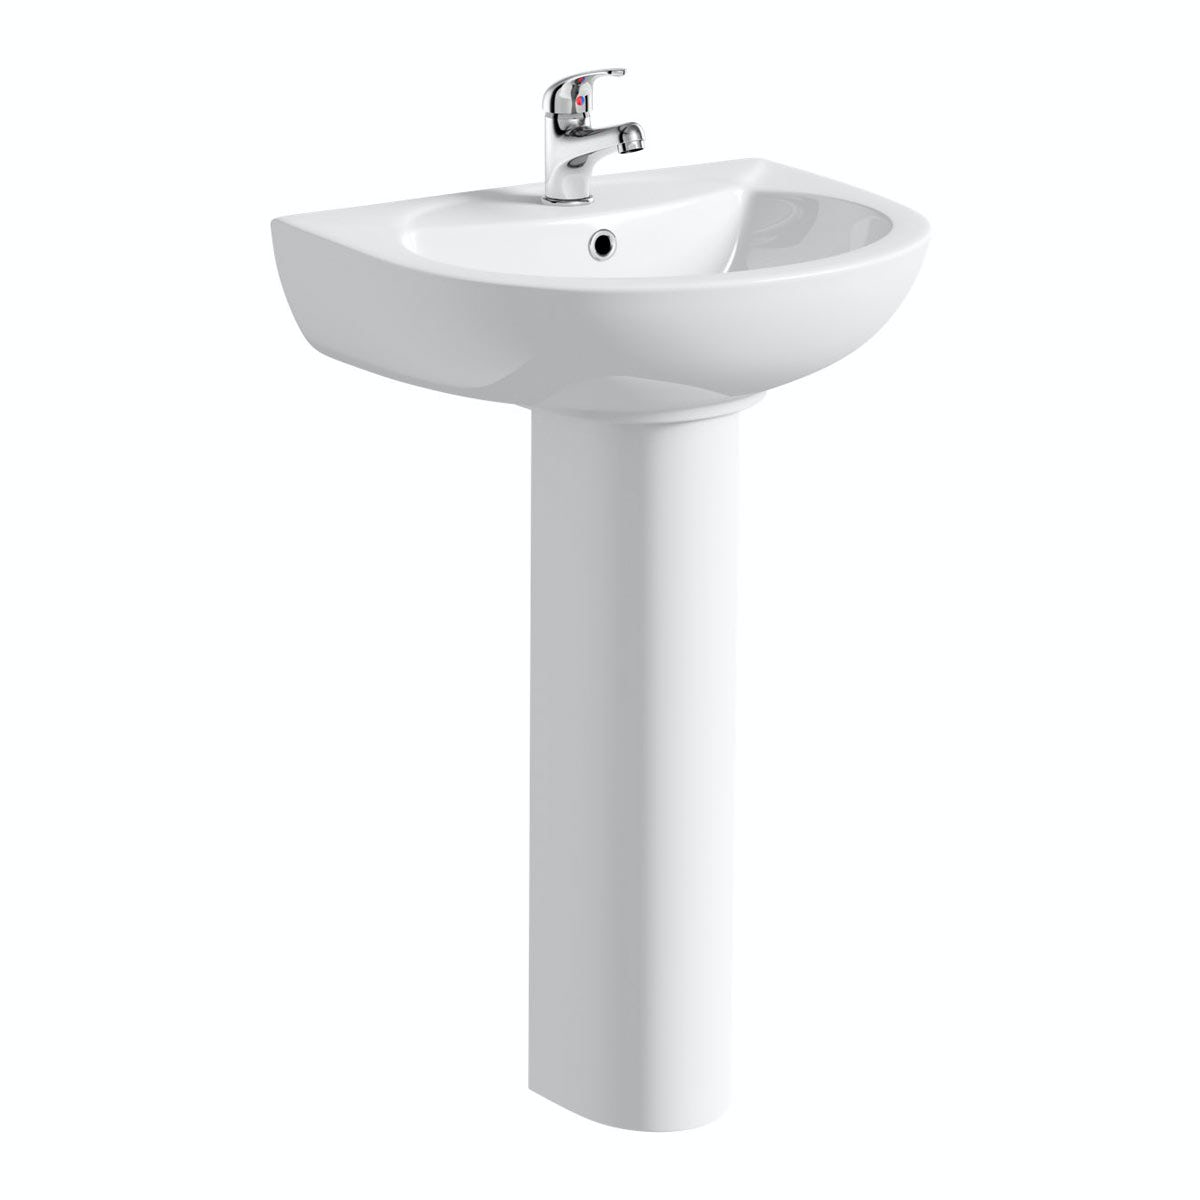 Clarity Basin and Full Pedestal